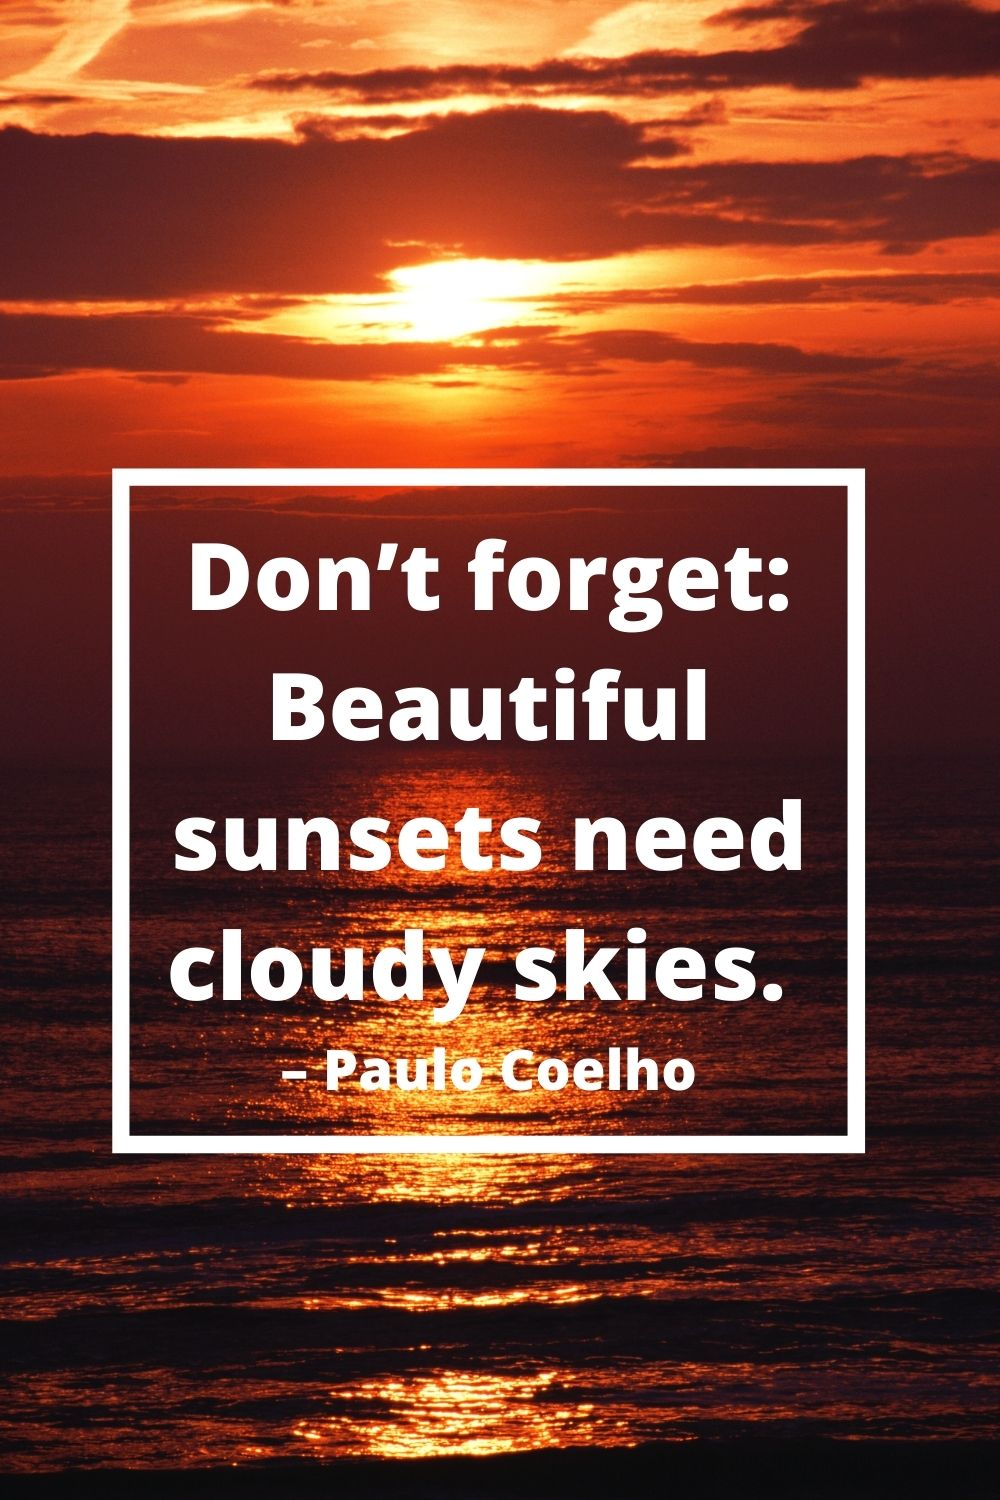 Don't forget: Beautiful sunsets need cloudy skies. – Paulo Coelho